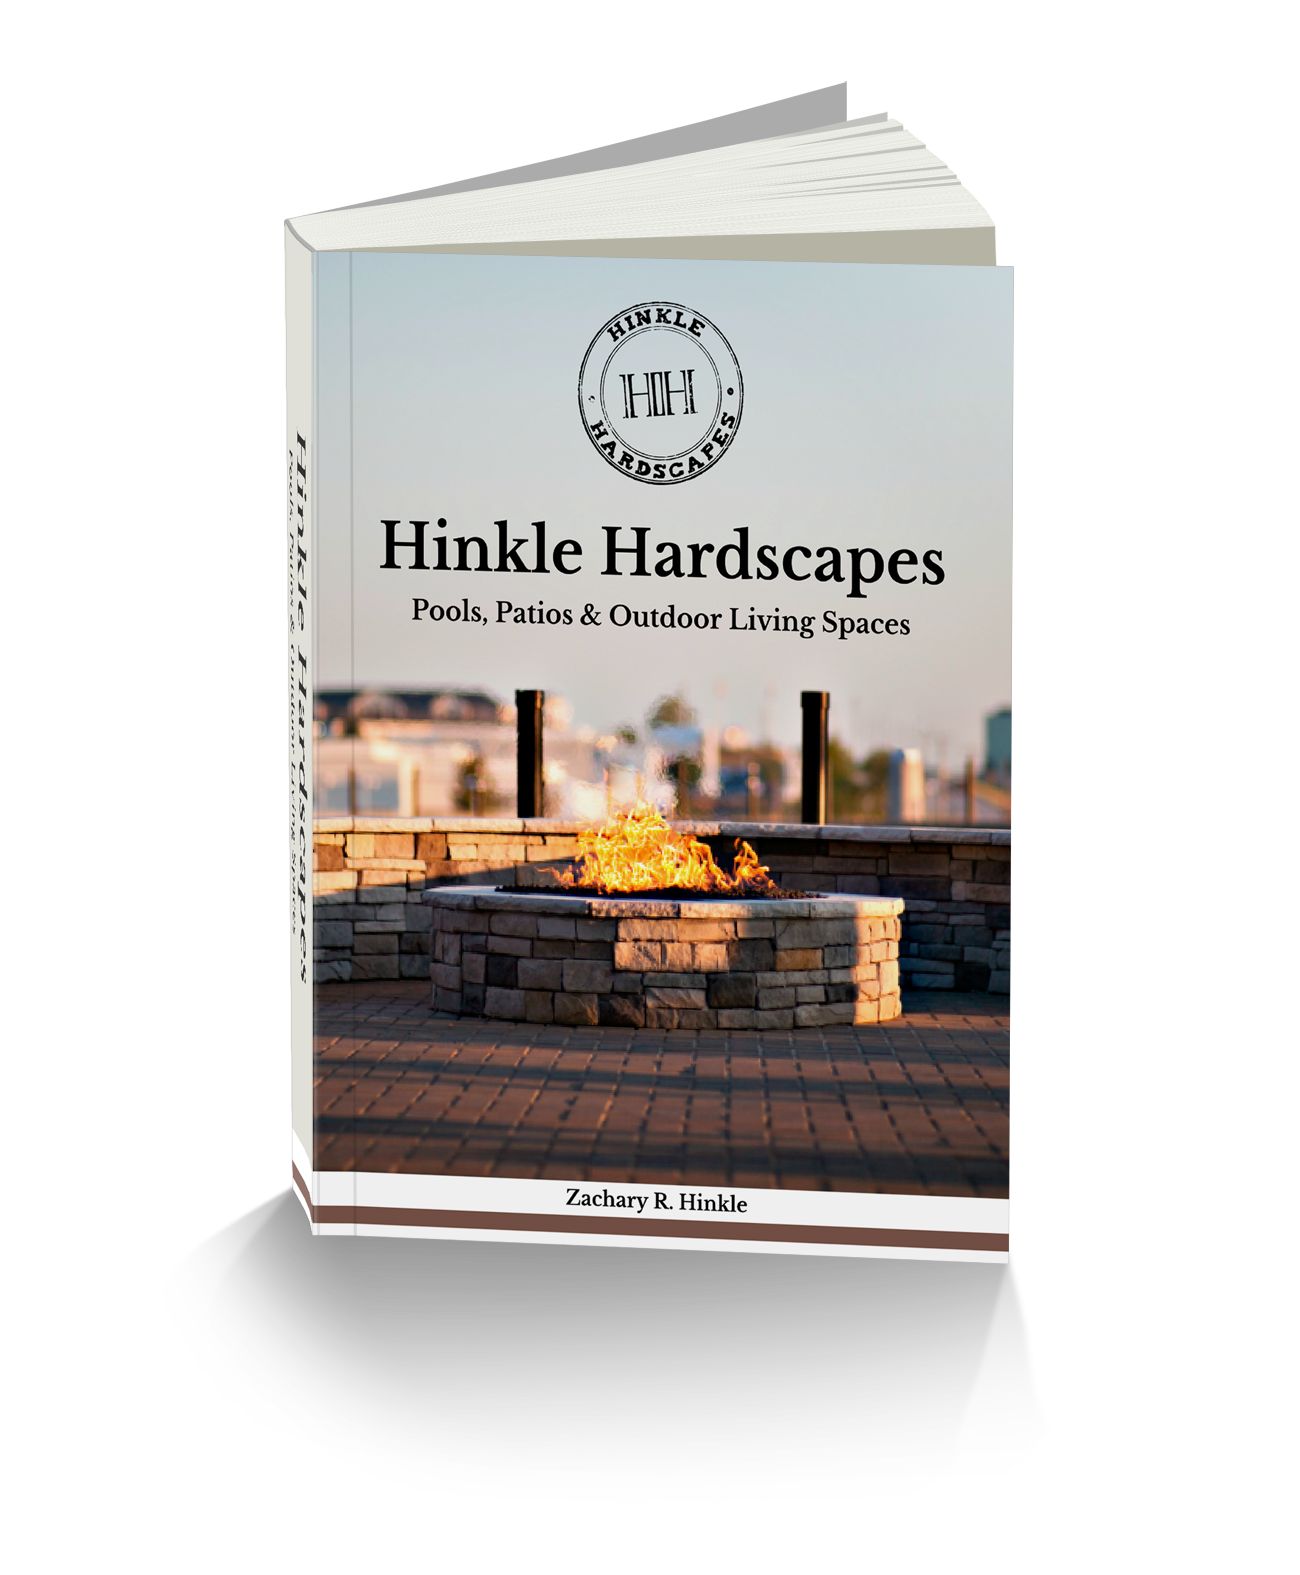 Book Cover Design Ks : Stamped concrete kansas city patios hardscaping fire pits